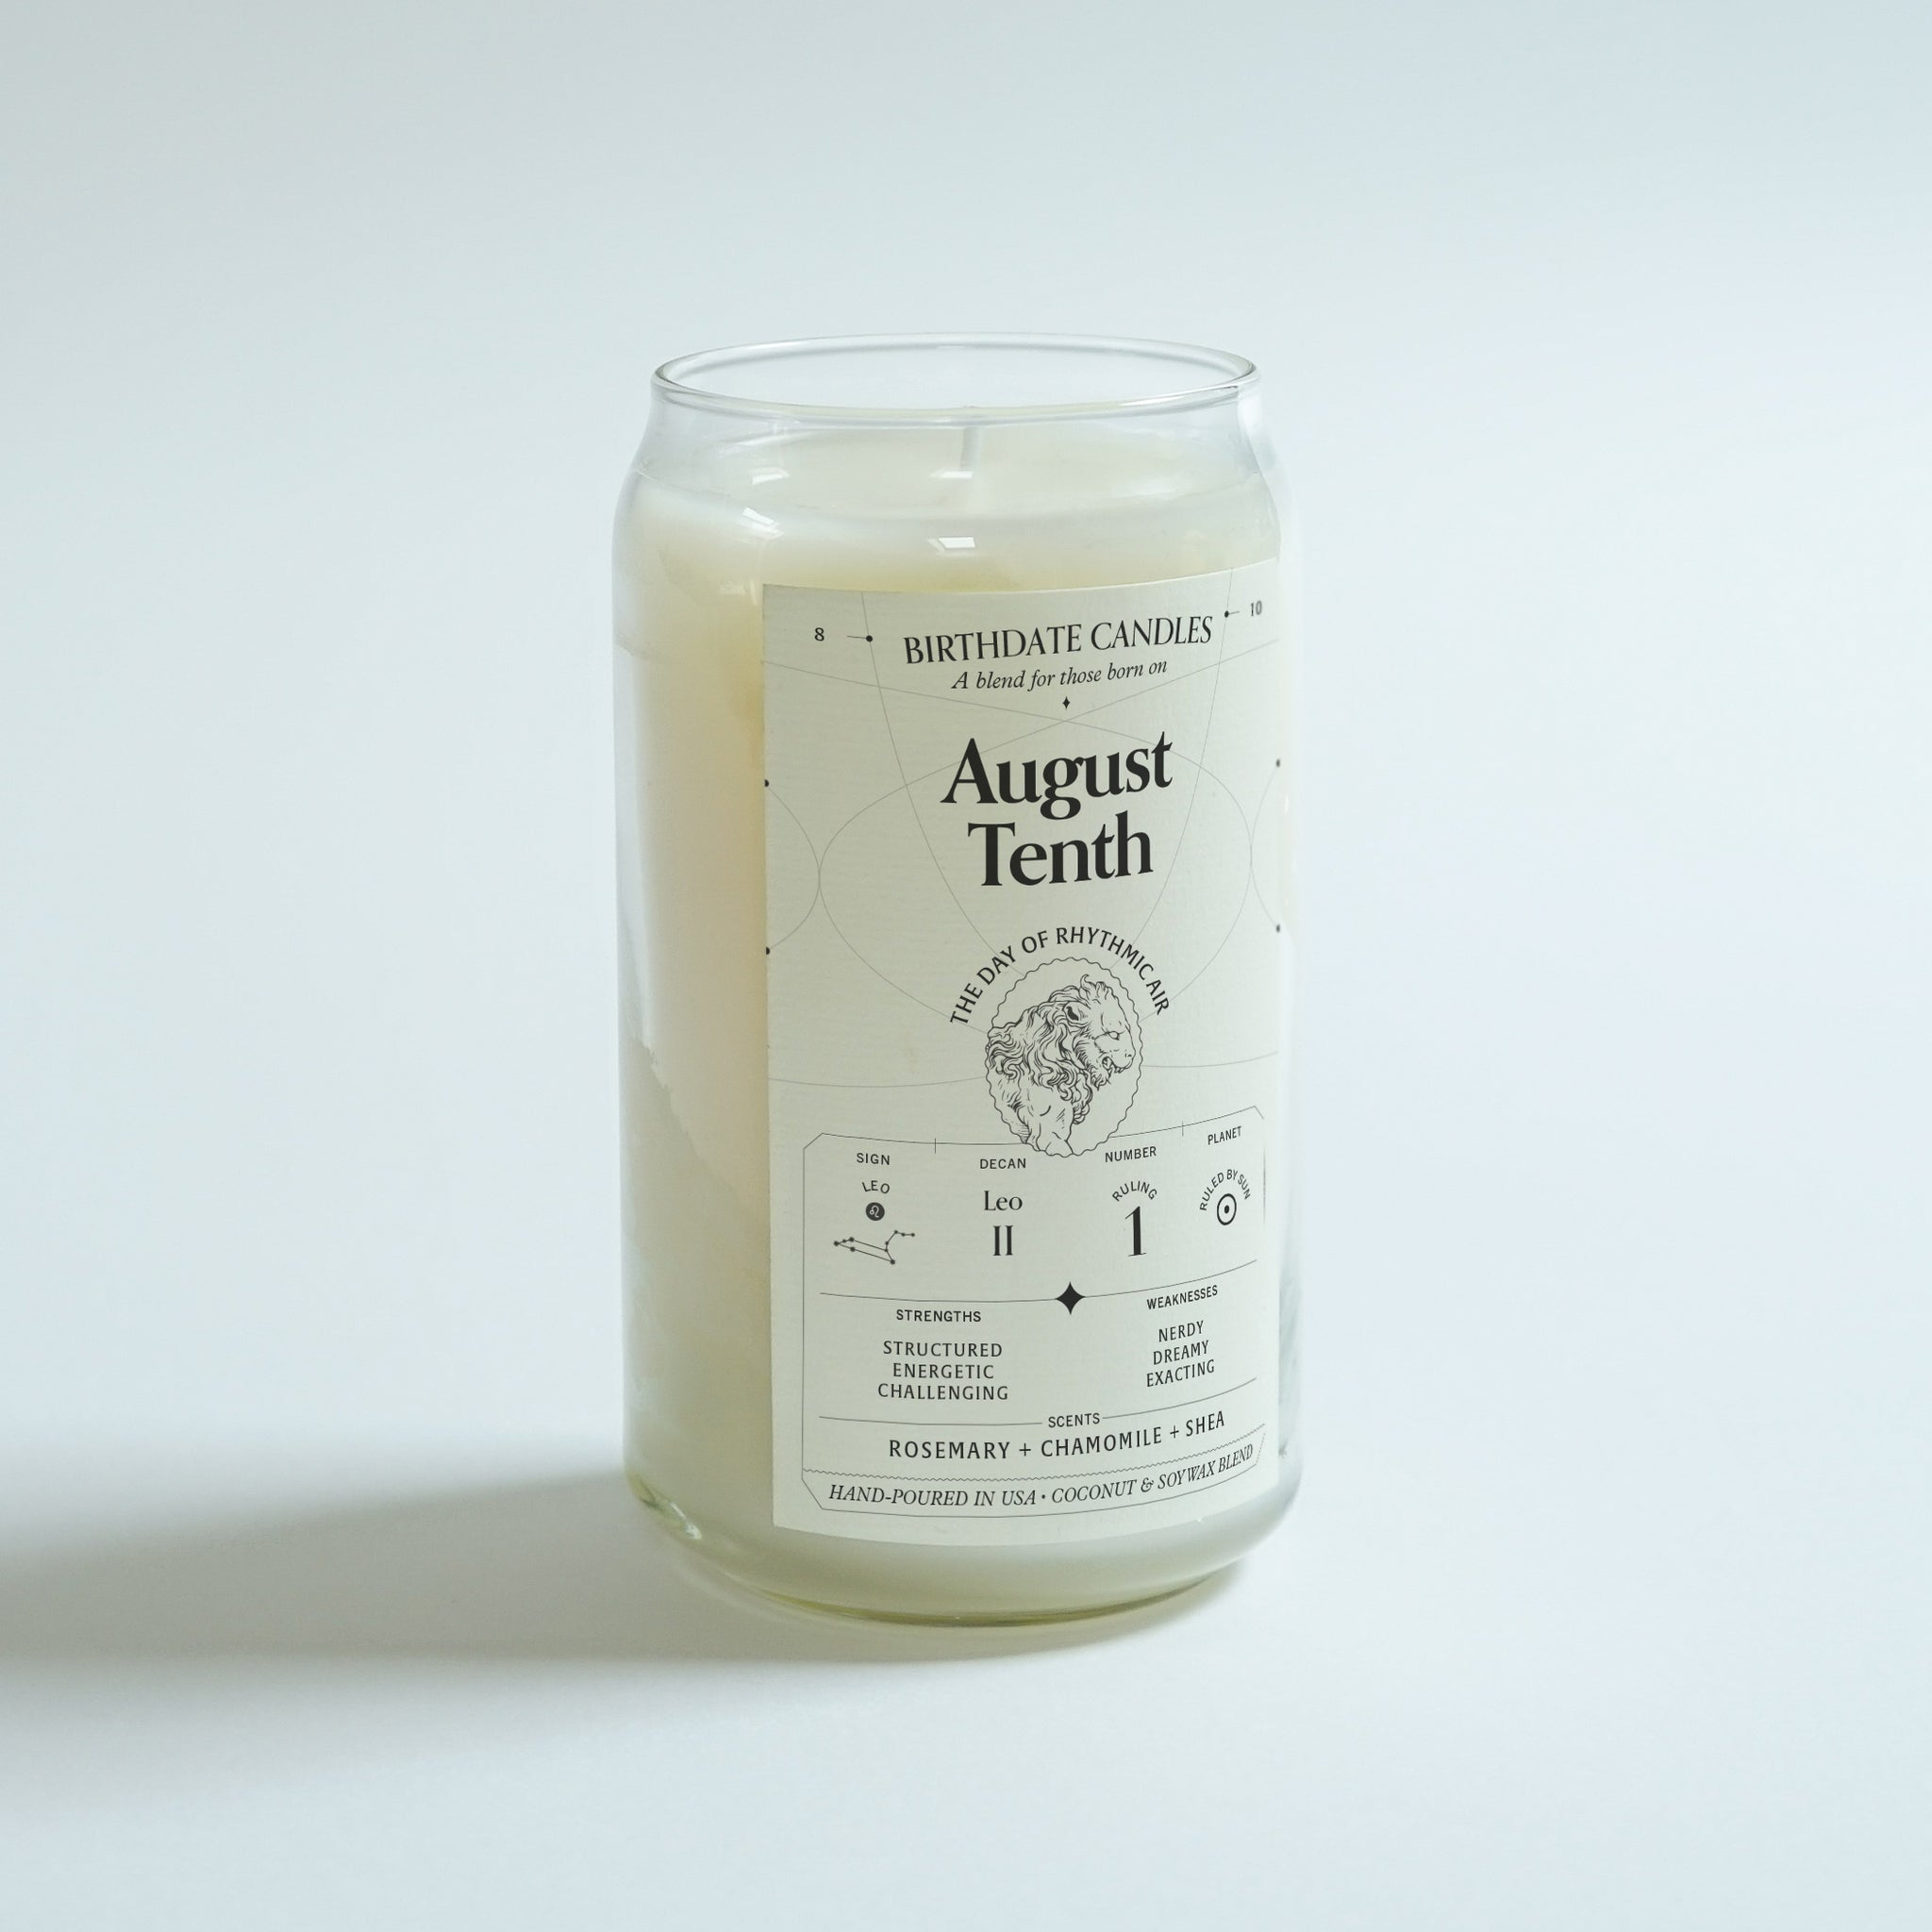 The August Tenth Candle